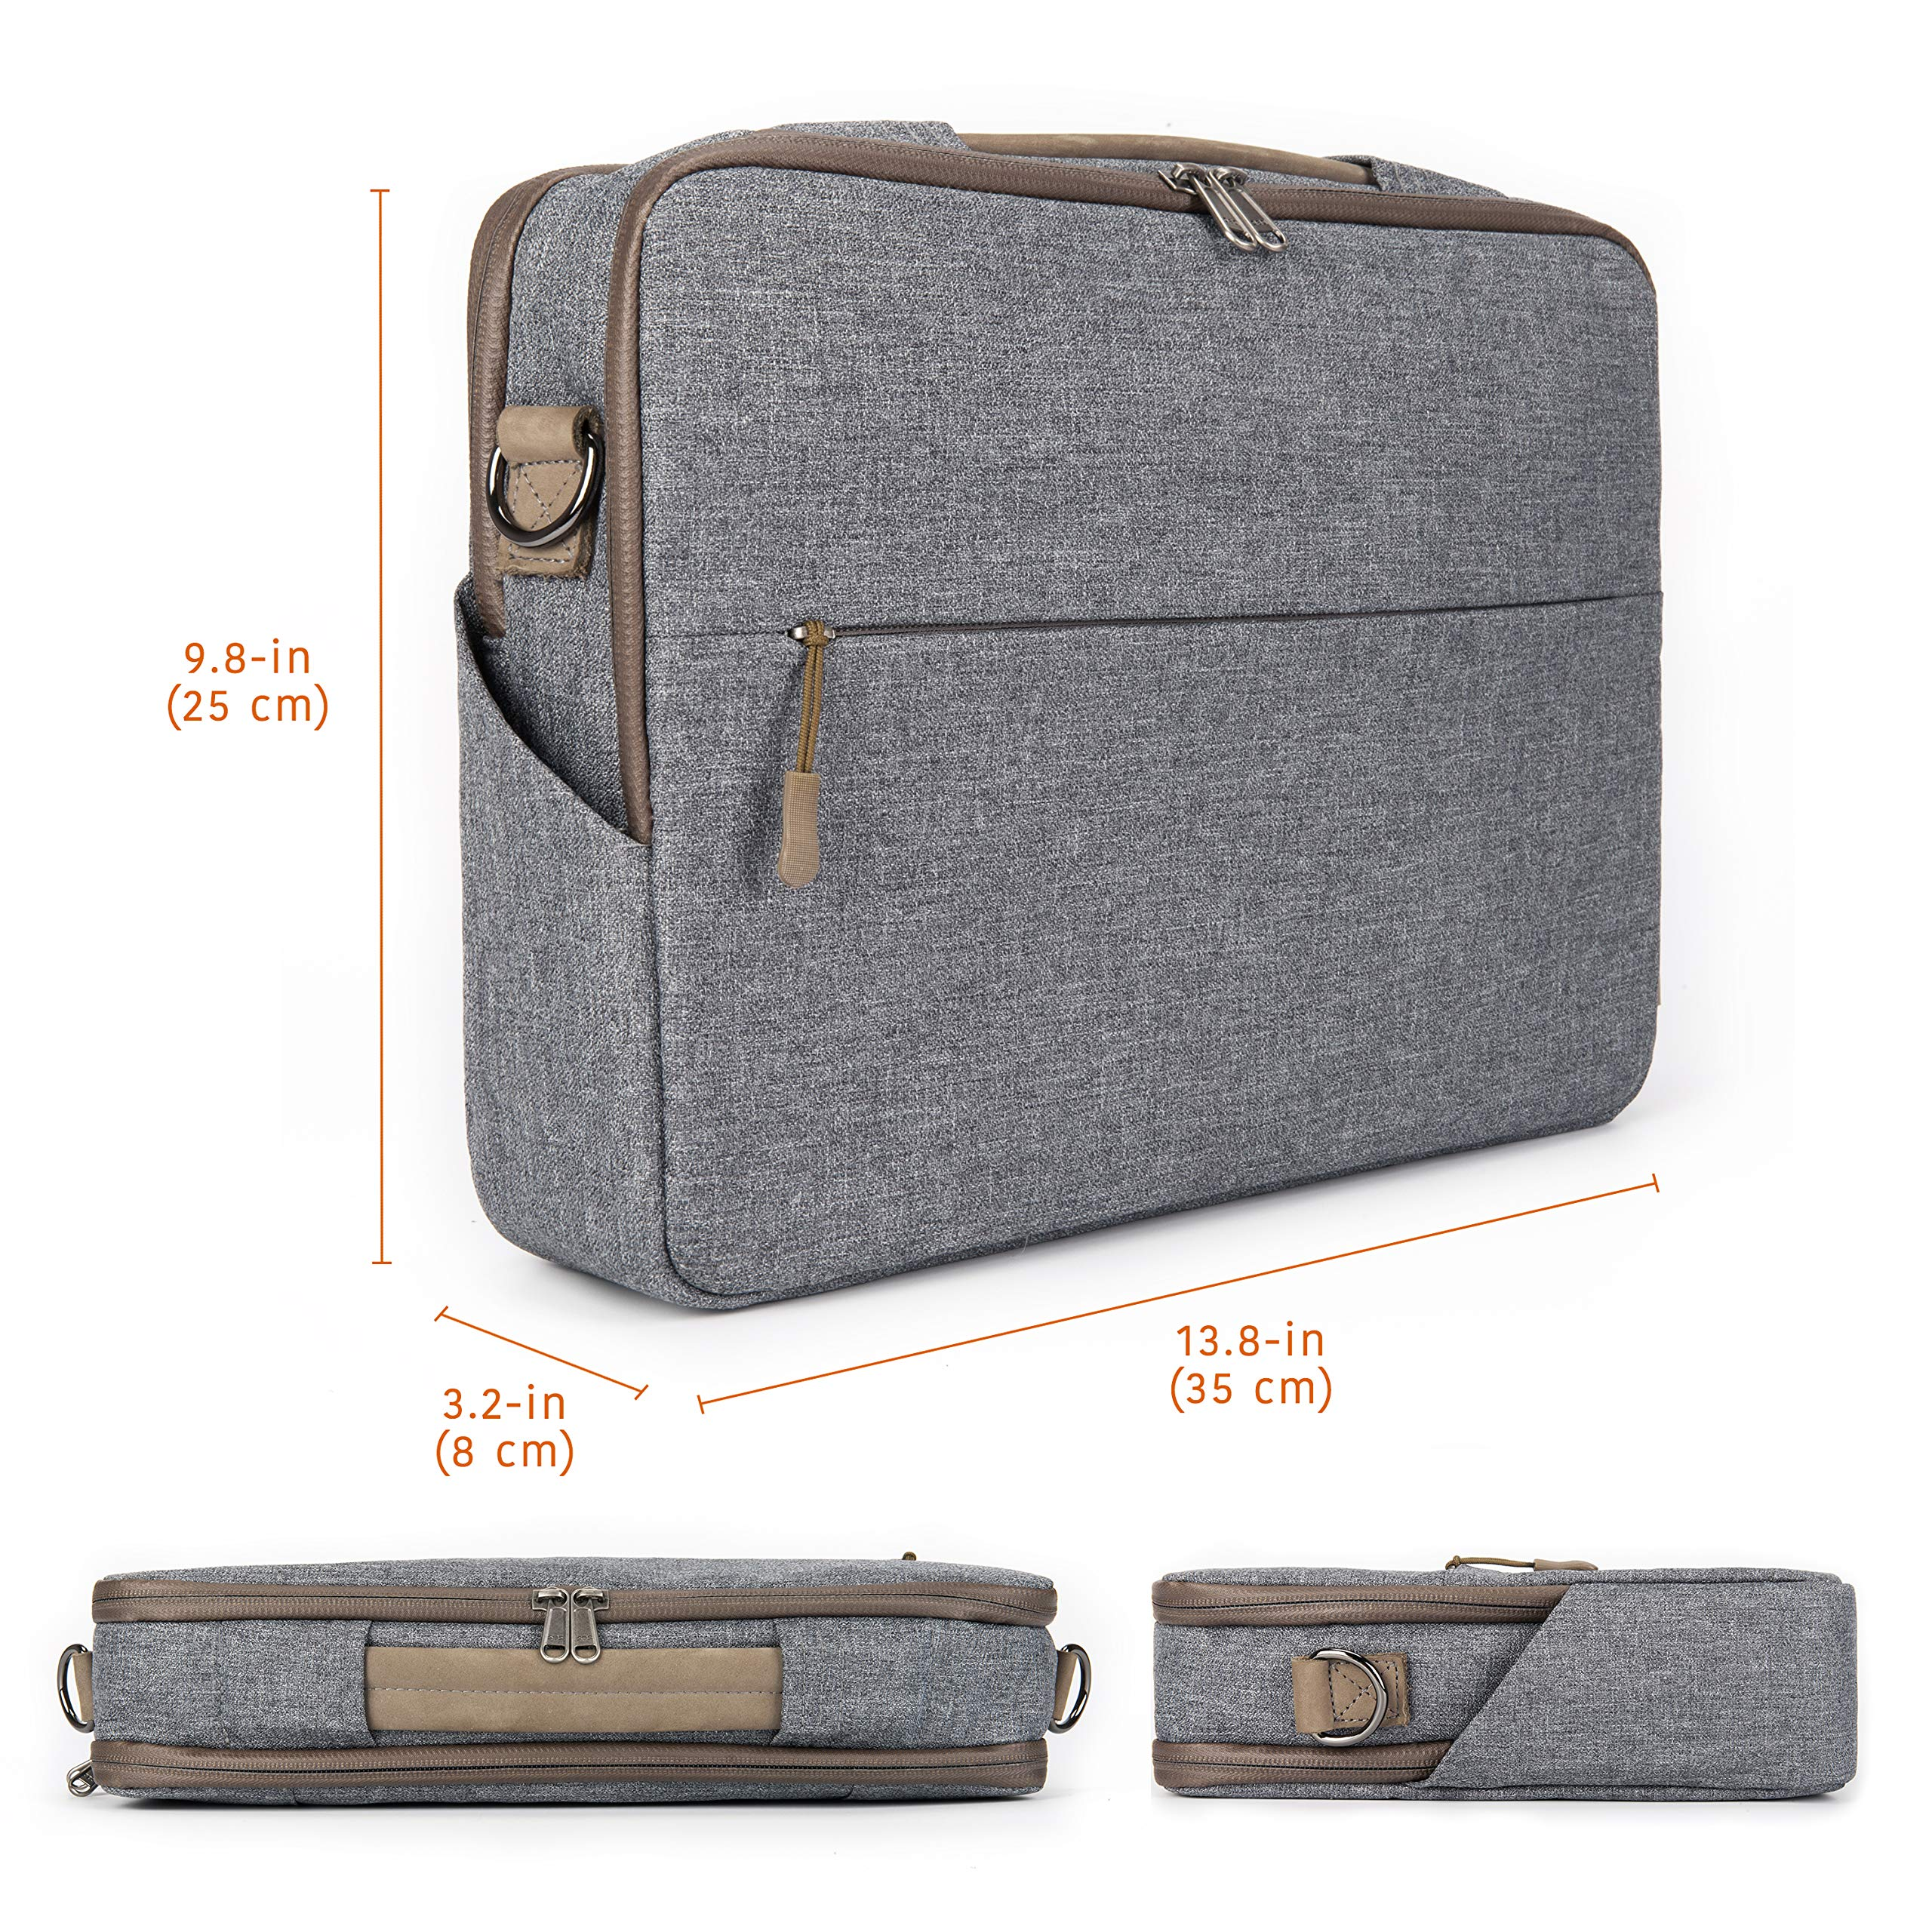 """Comfyable Laptop Bag 13 Inch, Computer Briefcase for Men with Organizer and Shoulder Strap for Travel and Business Shoulder Bag Fits 13.3"""" MacBook, Laptop, Tablet, Cool Grey by Comfyable (Image #6)"""